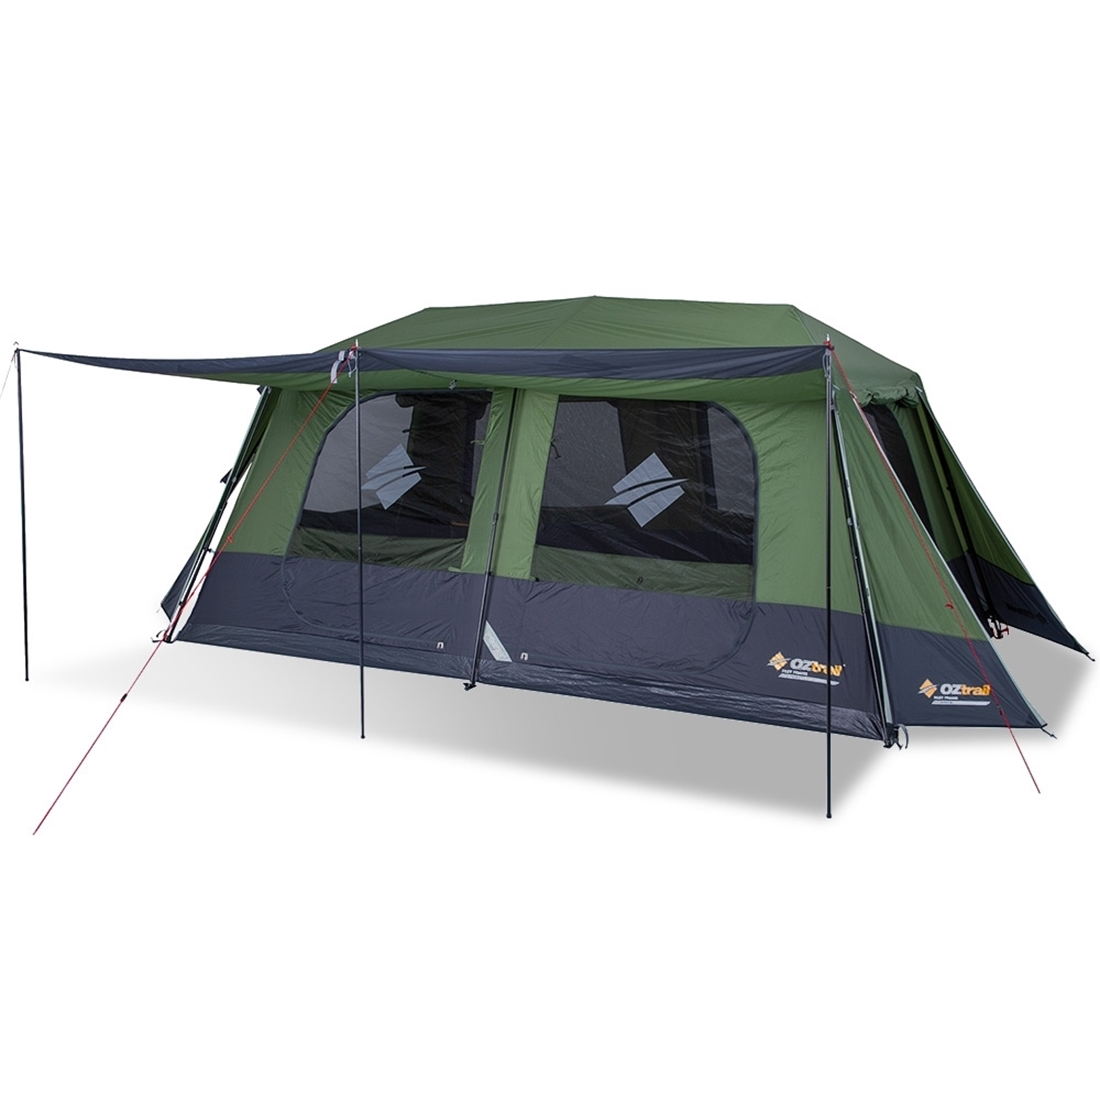 OZtrail Fast Frame 10 Person Tent